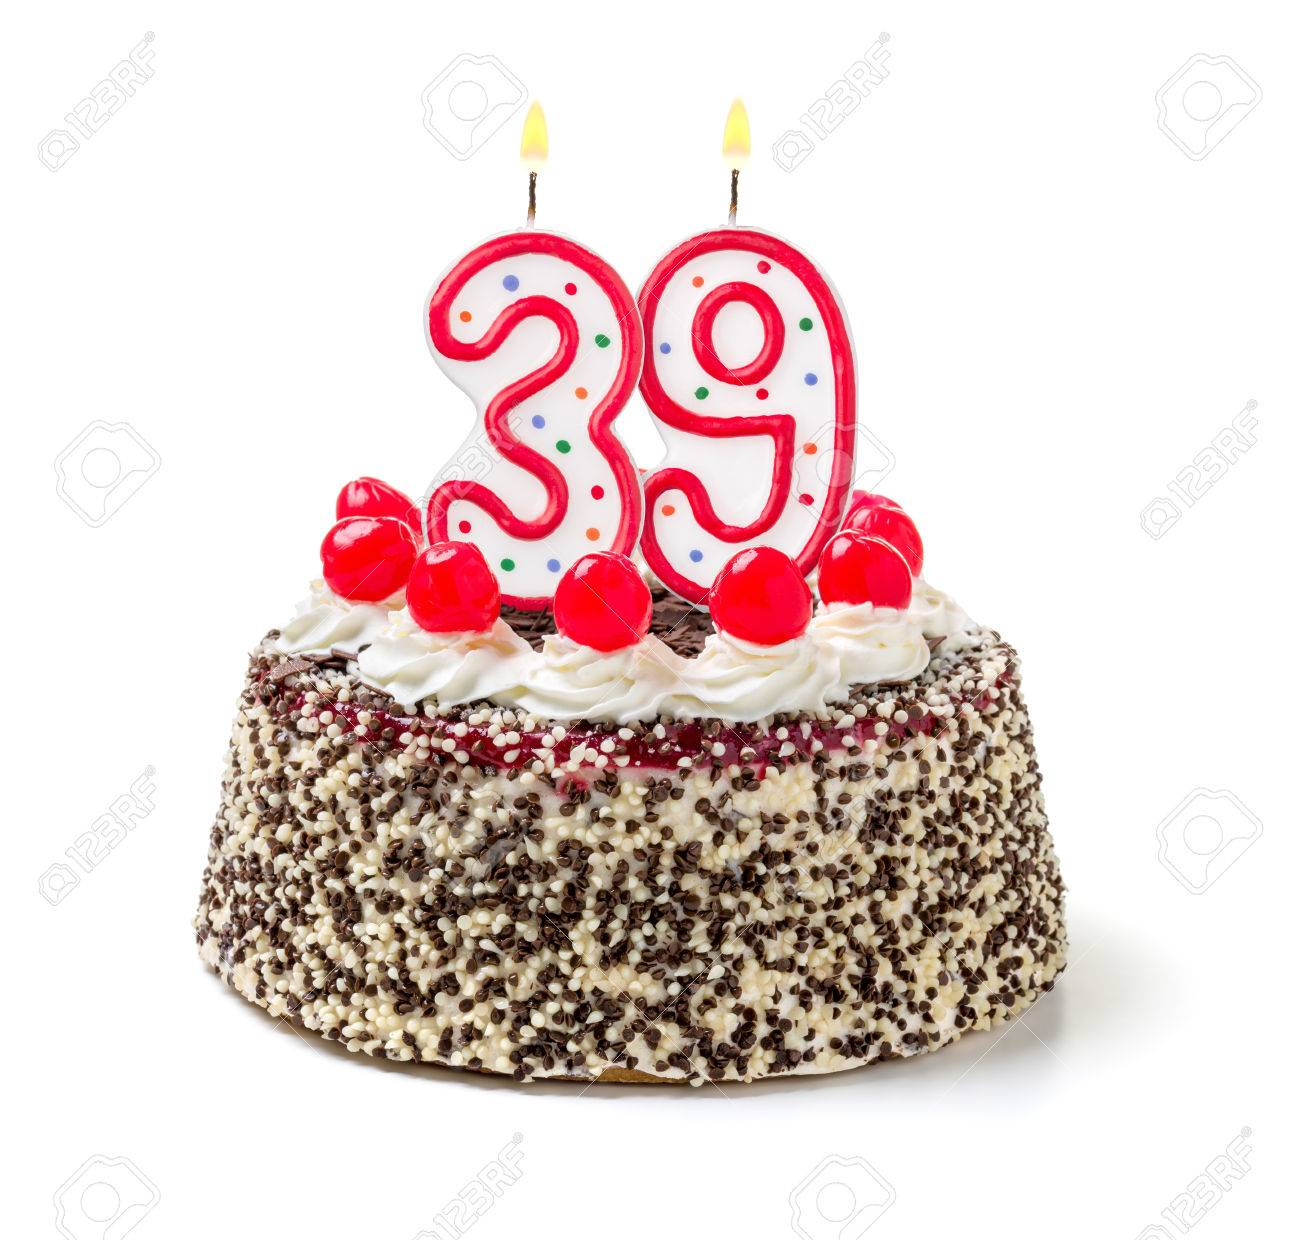 Birthday Cake With Burning Candle Number 39 Stock Photo Picture And